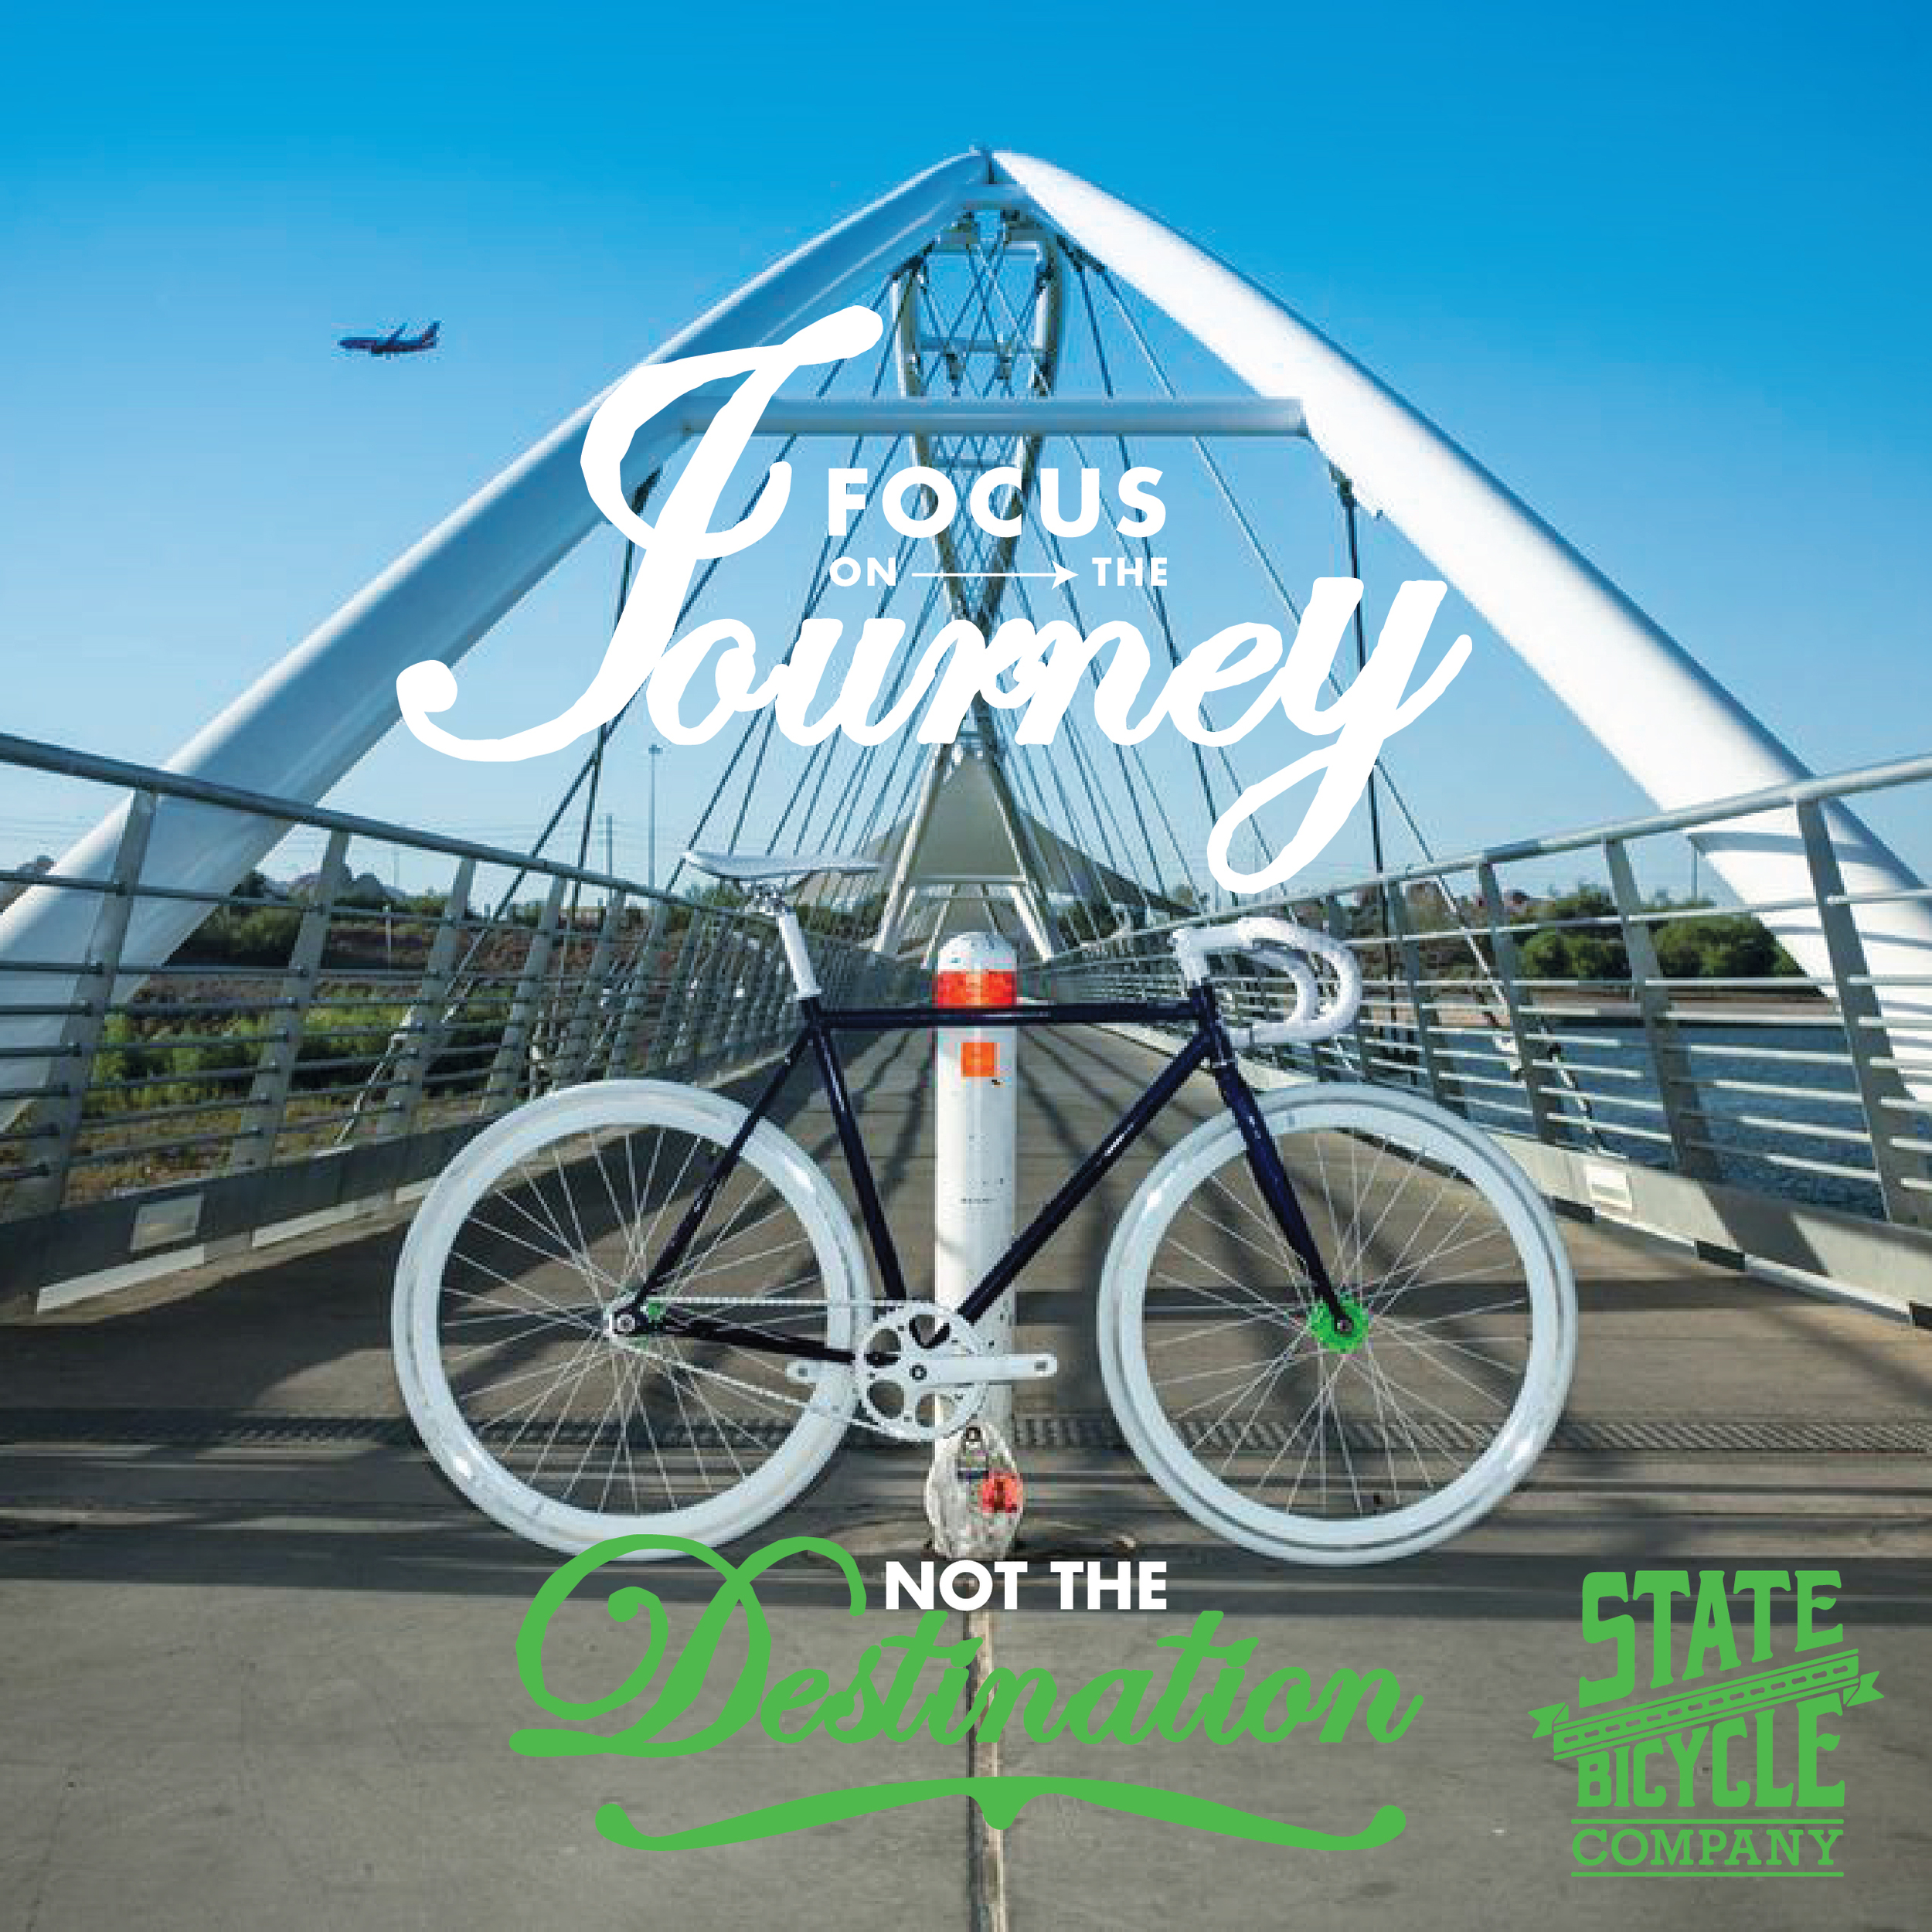 Focus+on+the+journey-01.jpg